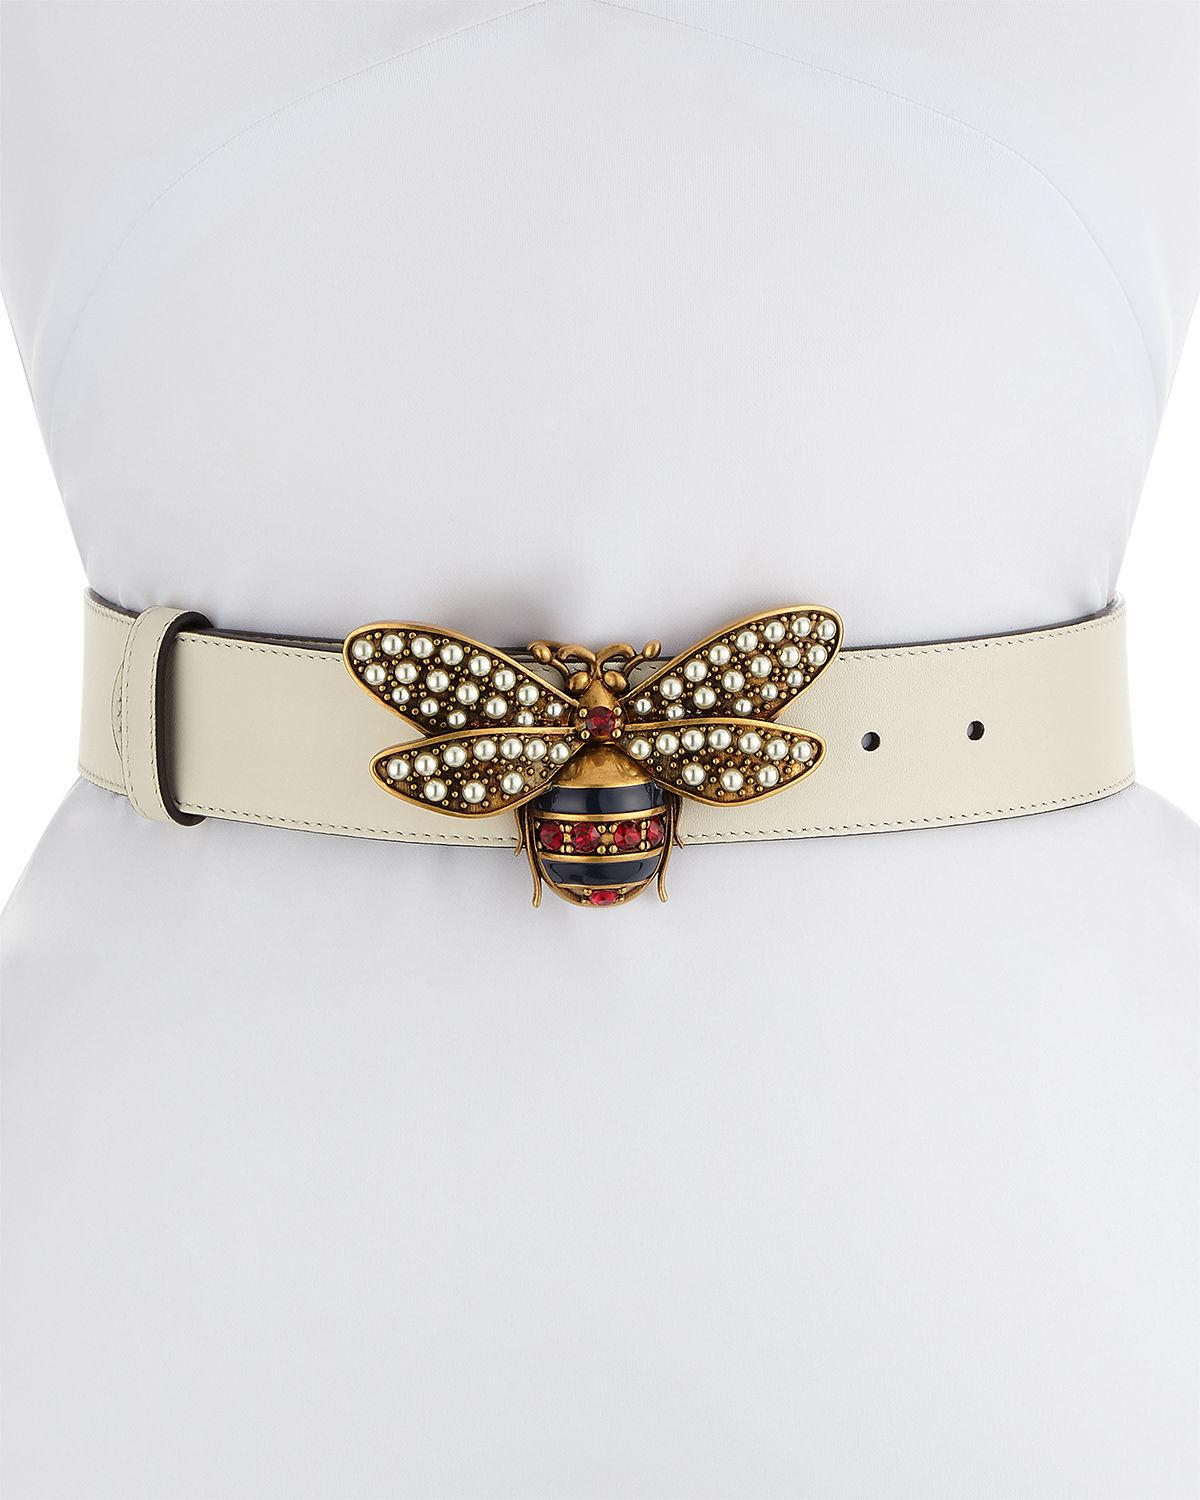 9a97aac59 Gucci Queen Margaret Leather Bee Belt in White - Lyst